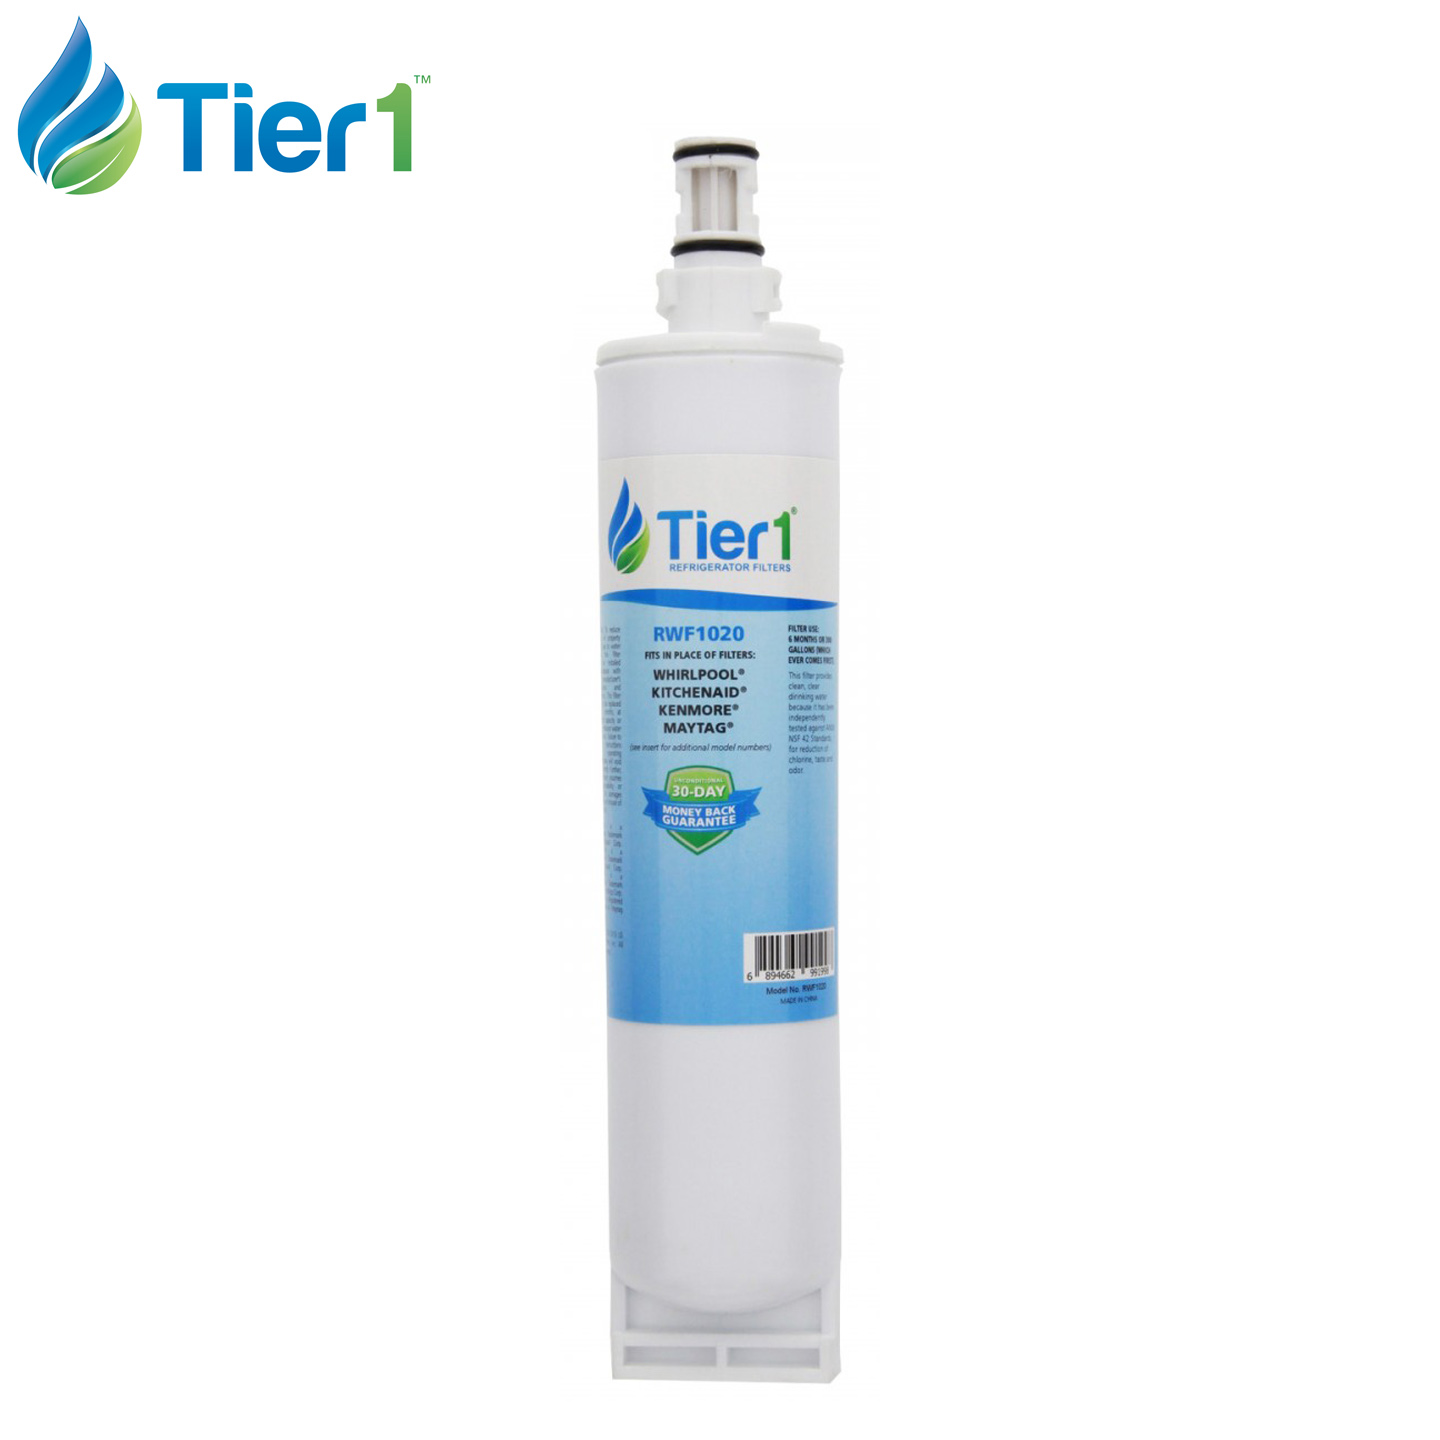 Tier1 Refrigerator Water Filters